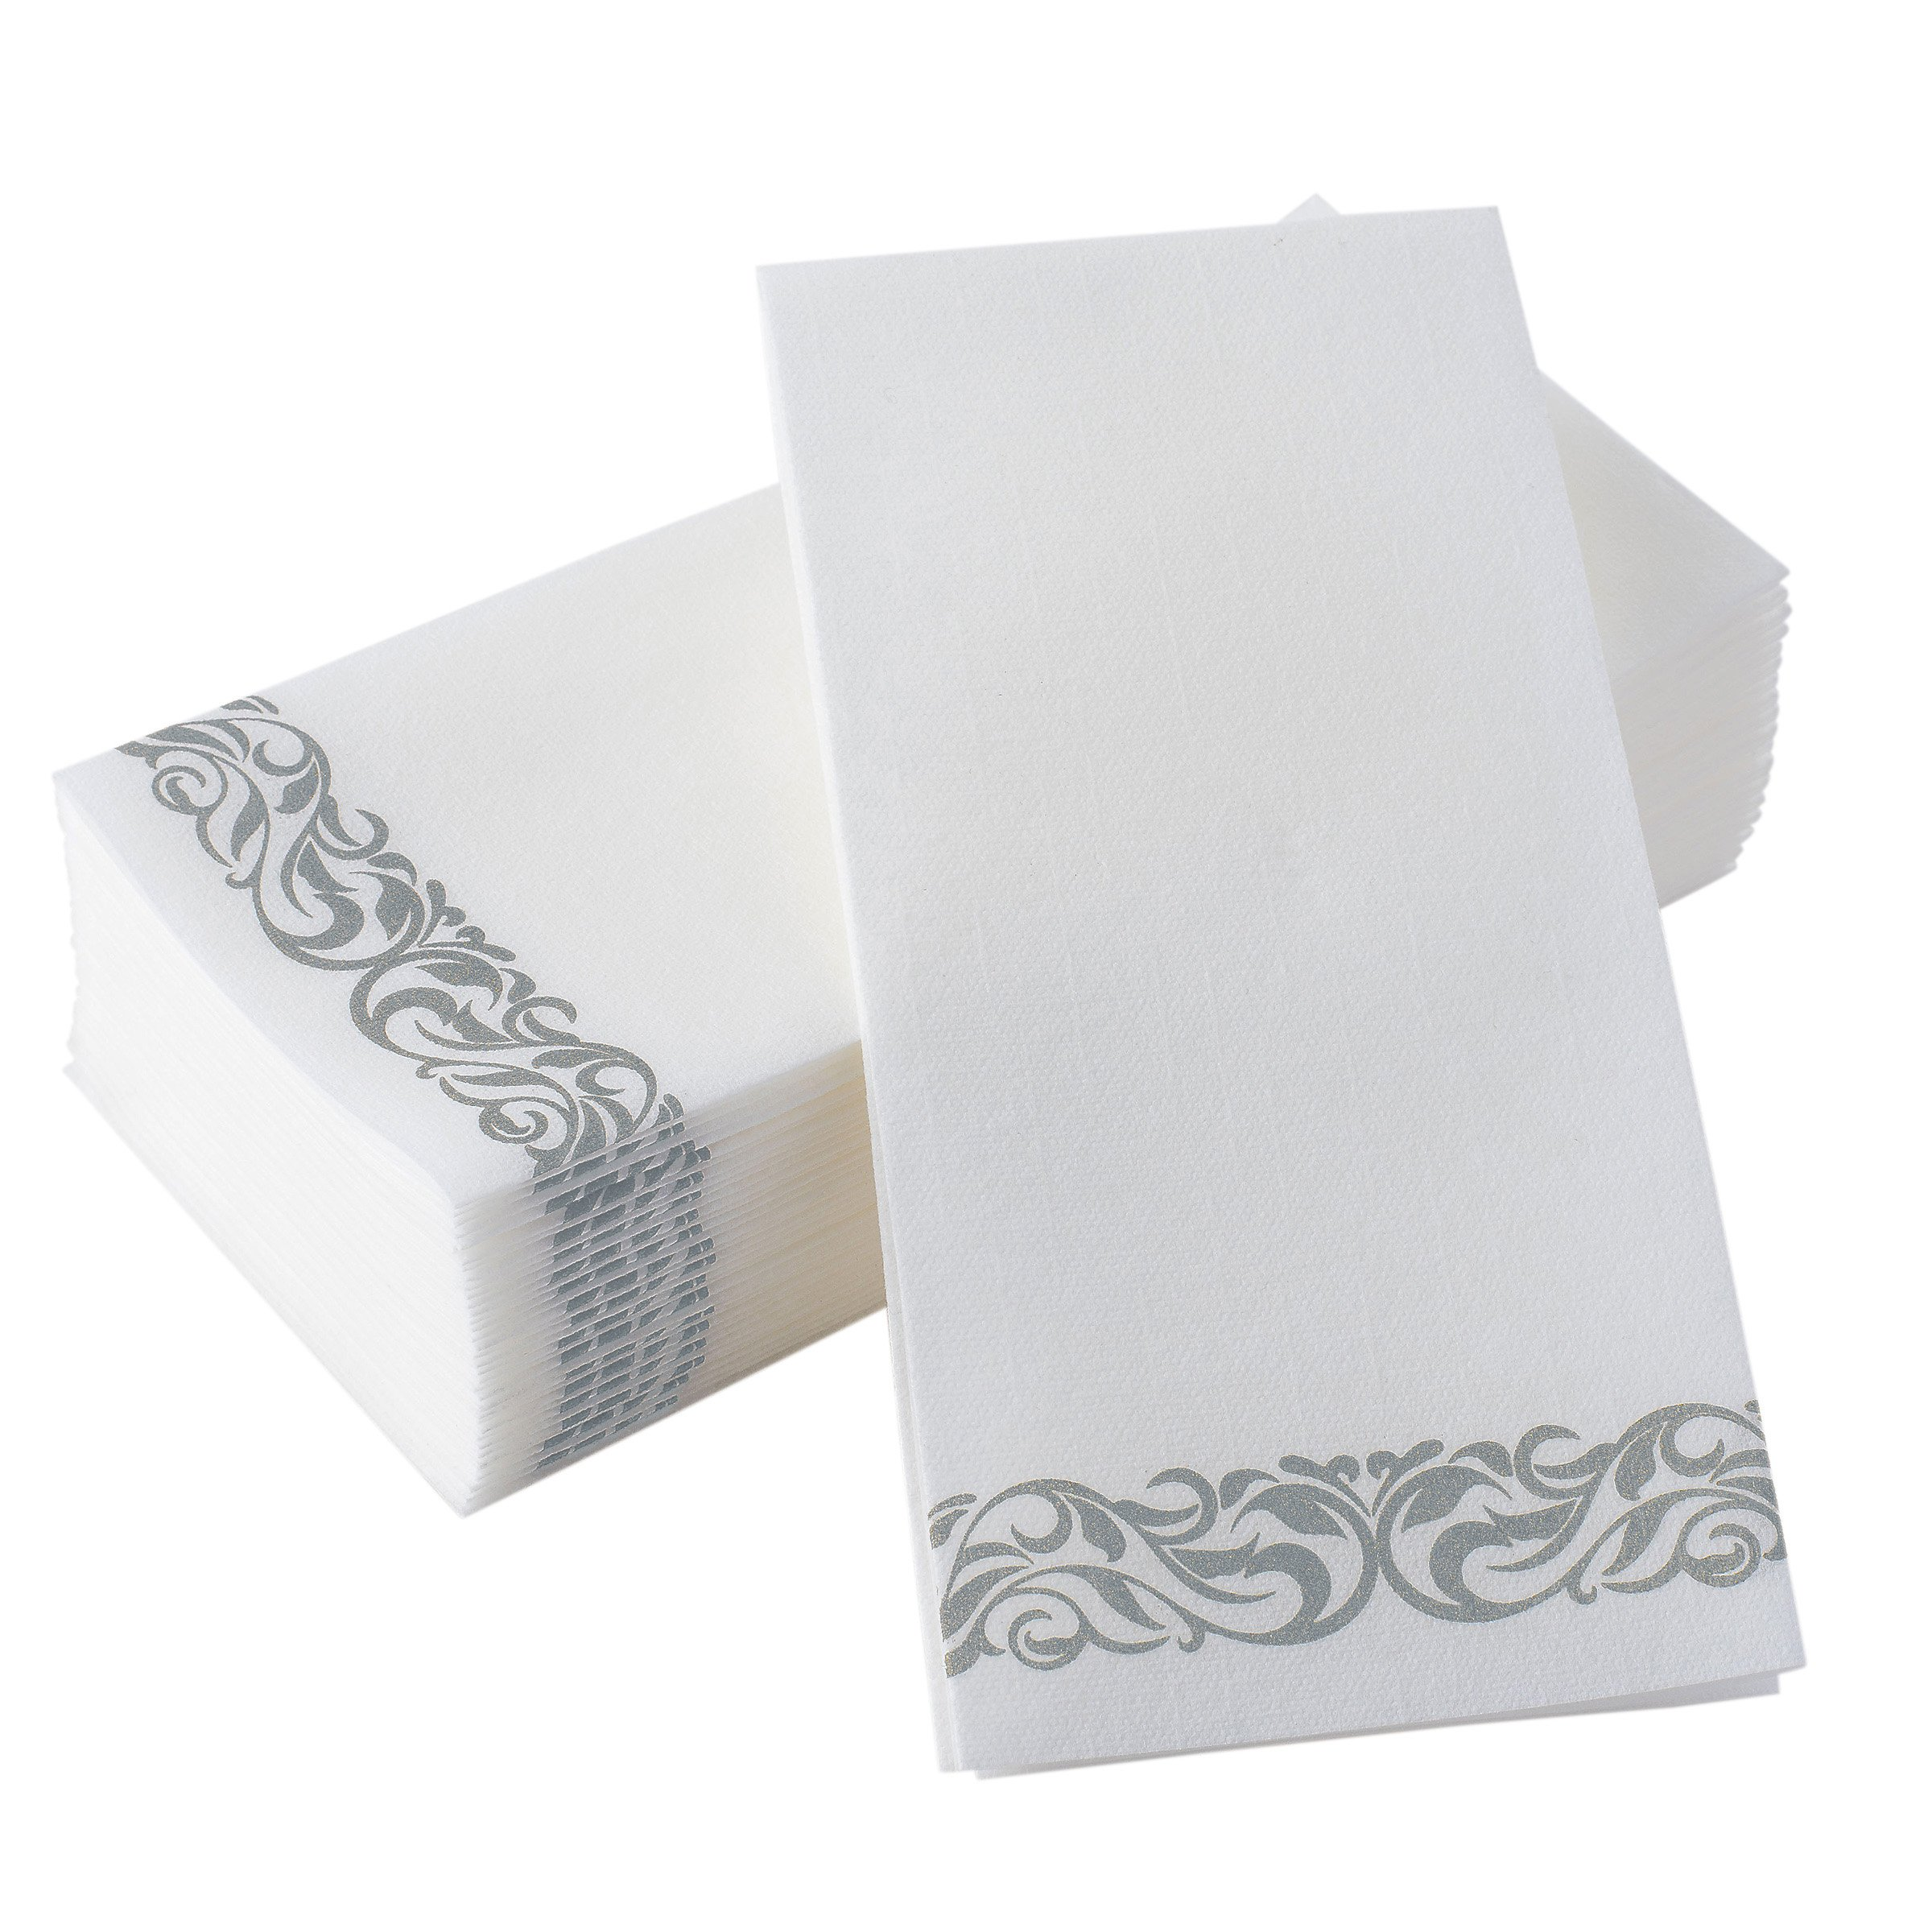 BloominGoods Disposable Linen-Feel Guest Towels - Decorative White Hand Towels, Silver Floral Cloth-Like Paper Napkins - Case 1000 (Bulk Packaging)